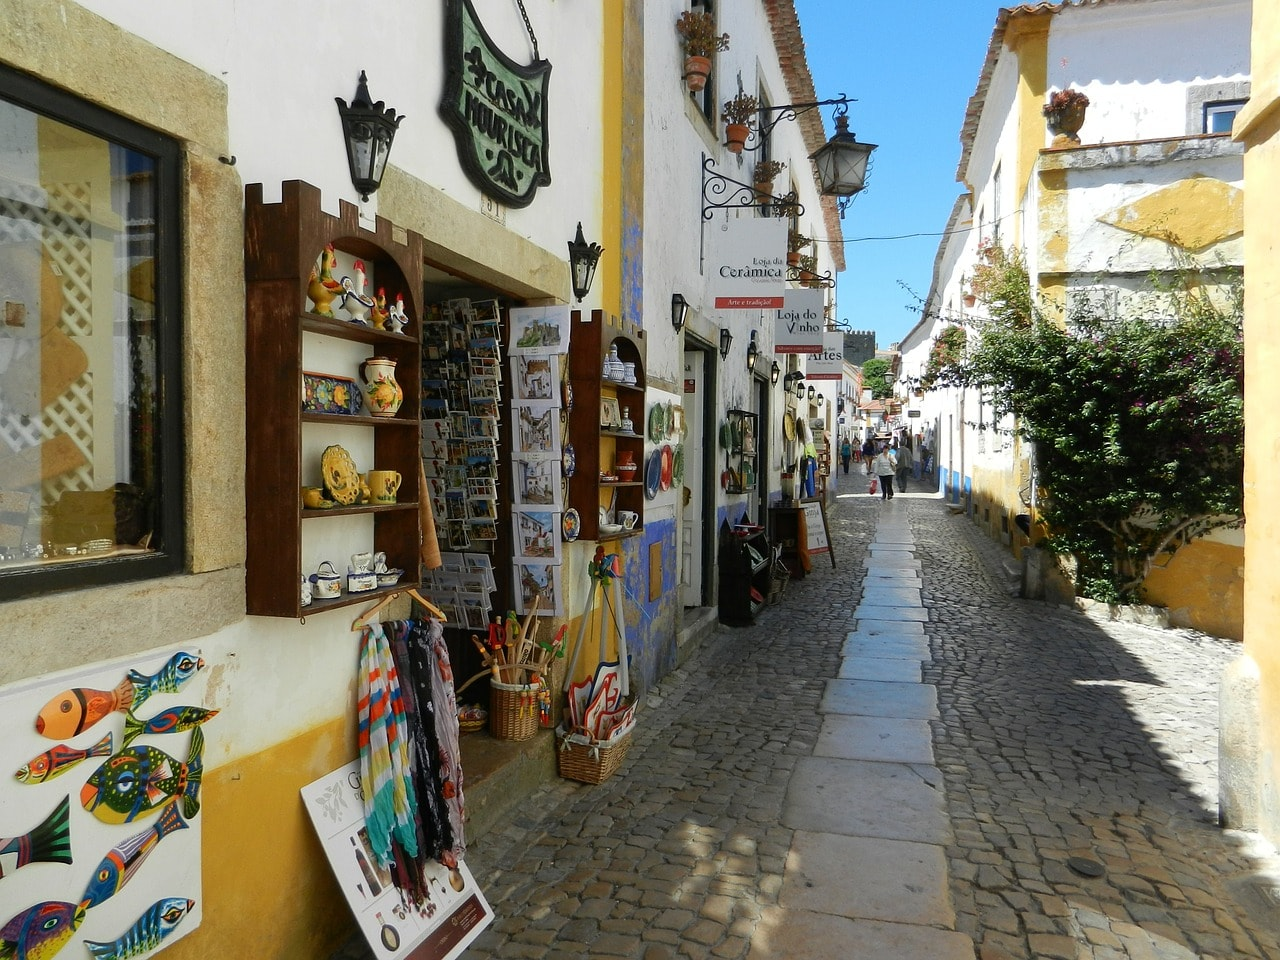 https://pixabay.com/en/obidos-portugal-city-houses-469057/